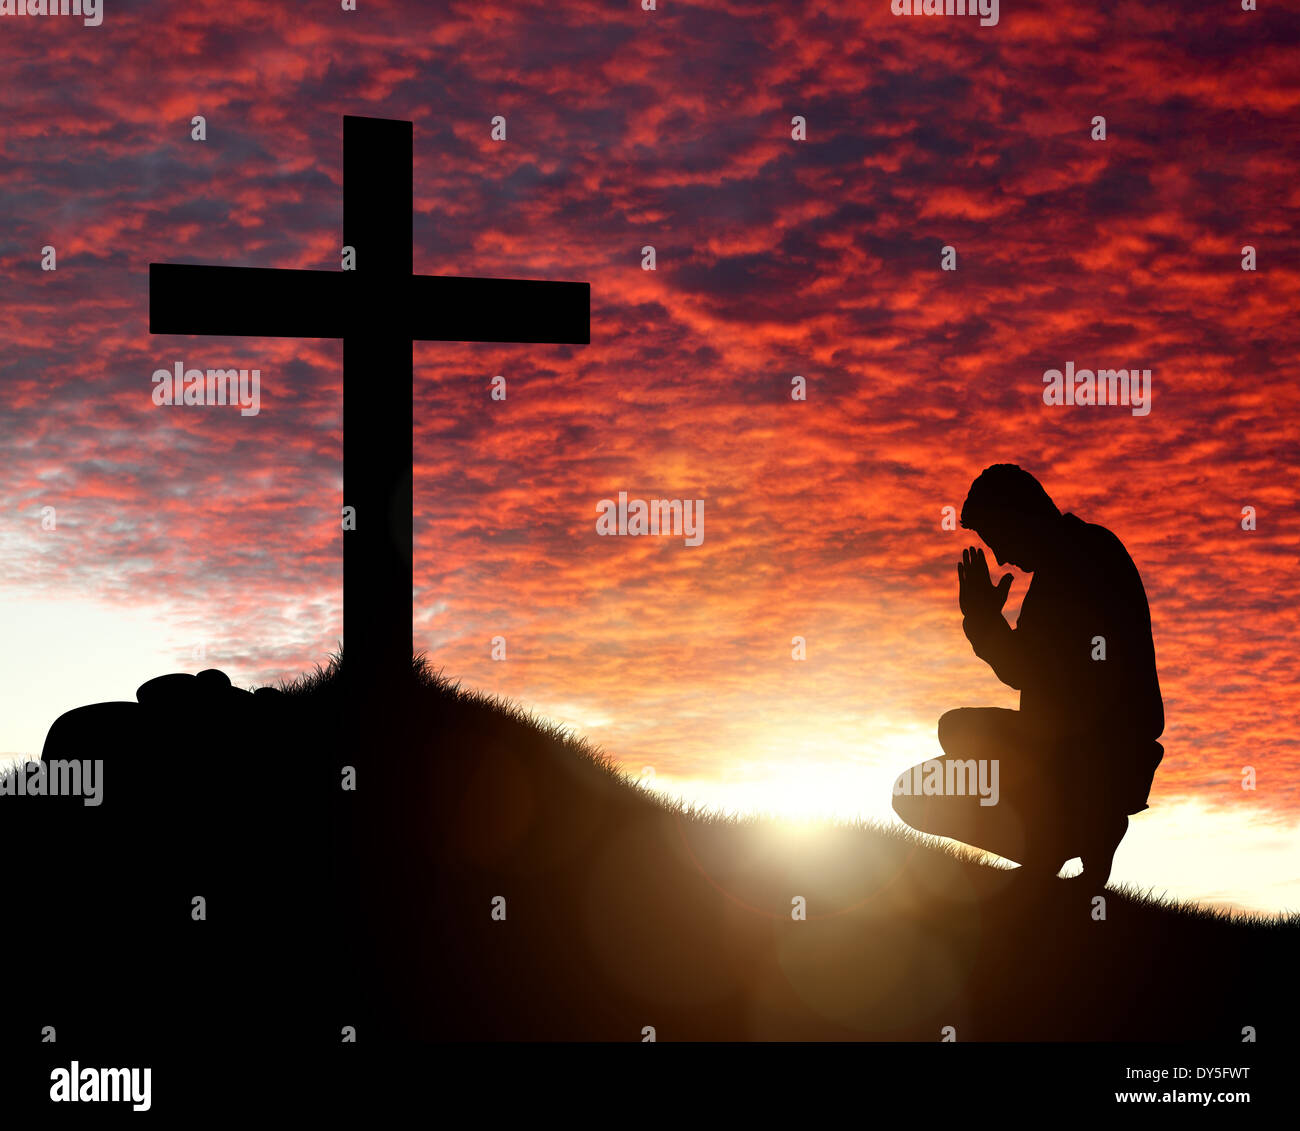 Worship, love and spirituality - Stock Image